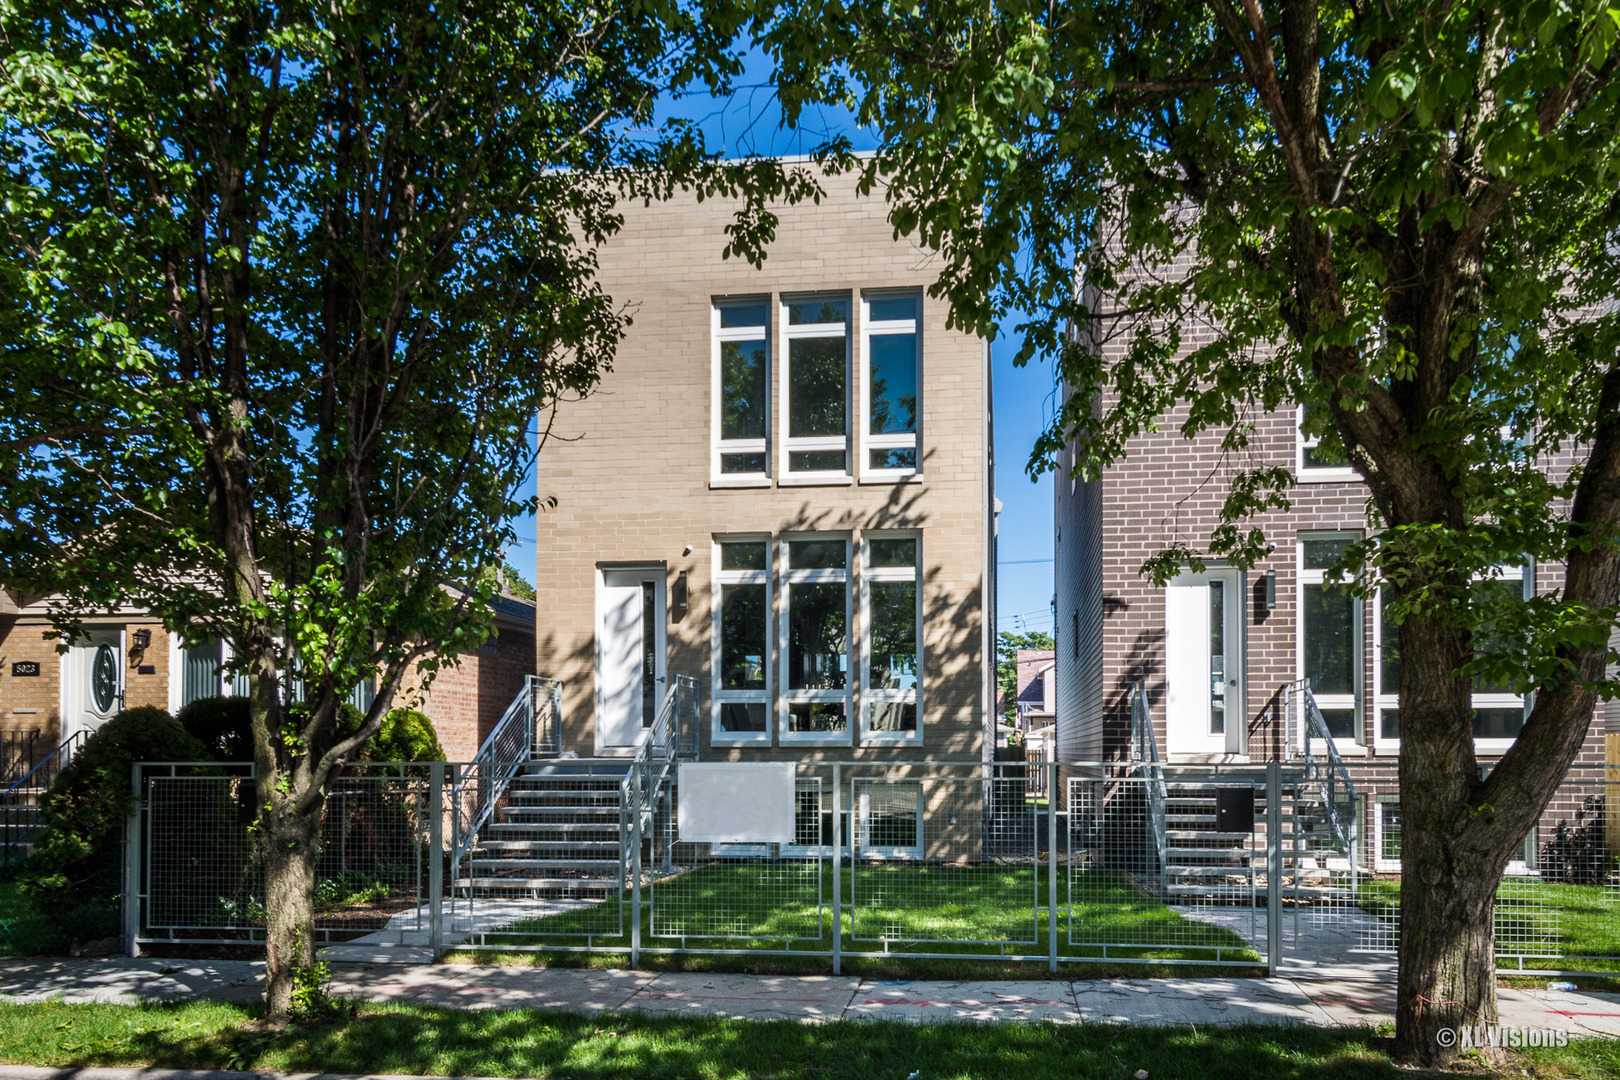 5021 NORTH KIMBERLY AVENUE, CHICAGO, IL 60630